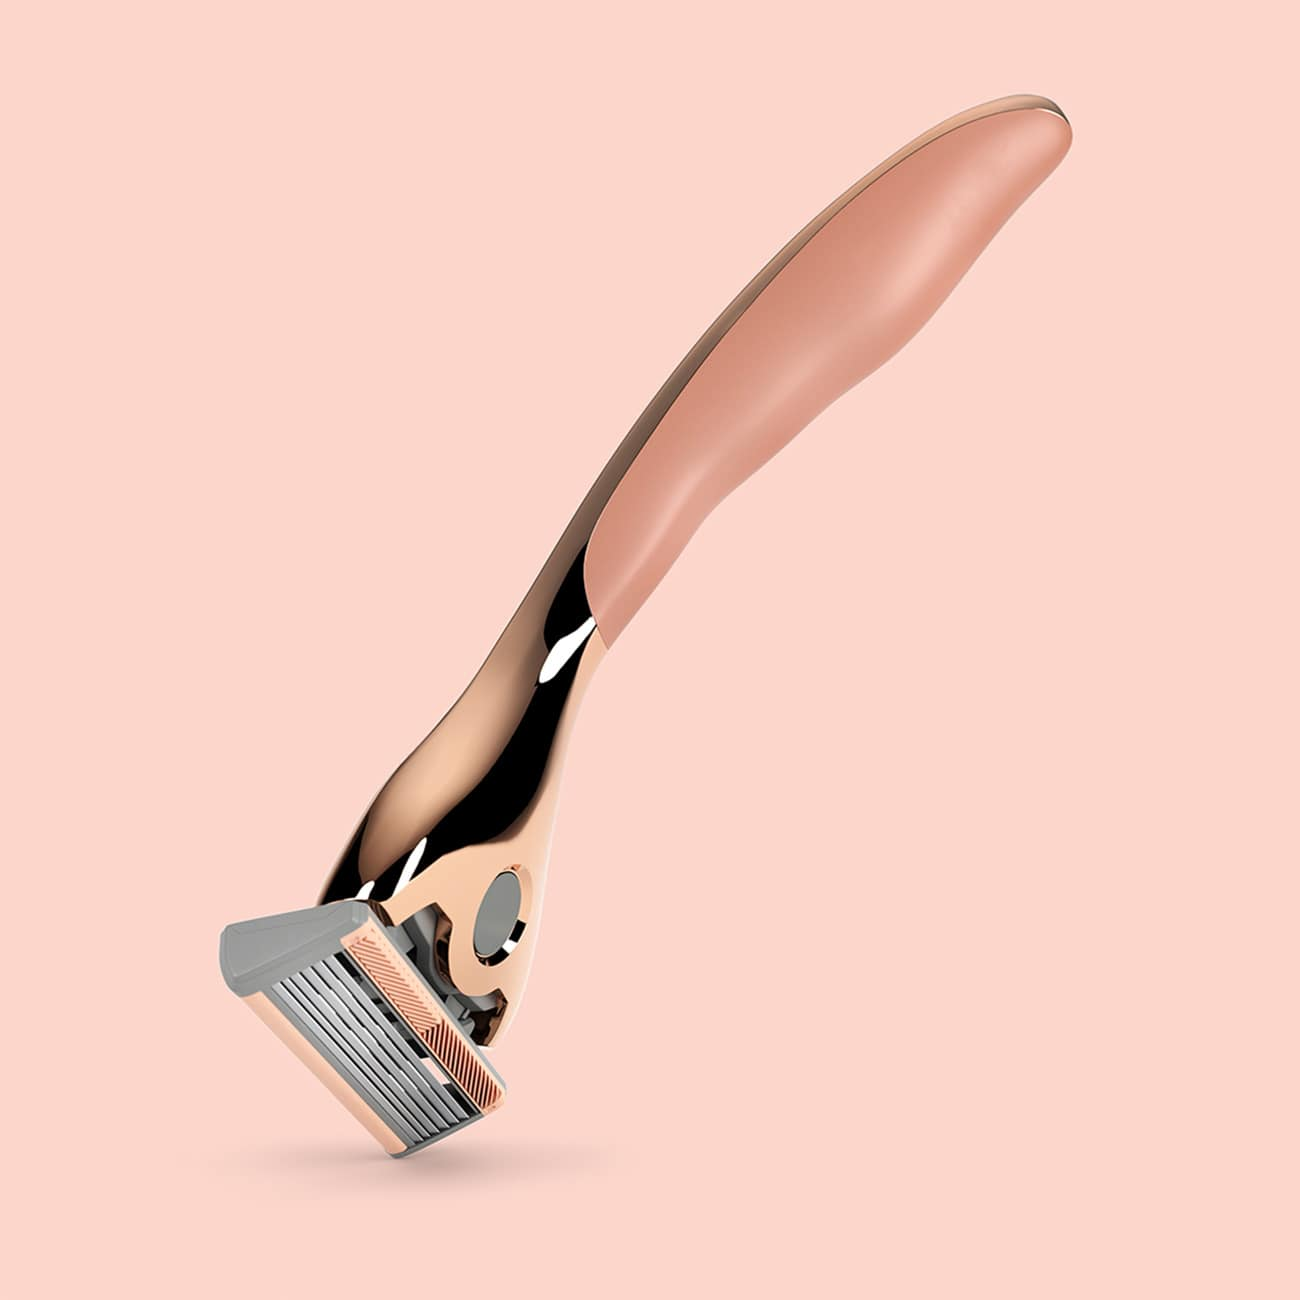 Realistic 3D product visuals for Friction Free Shaving razors